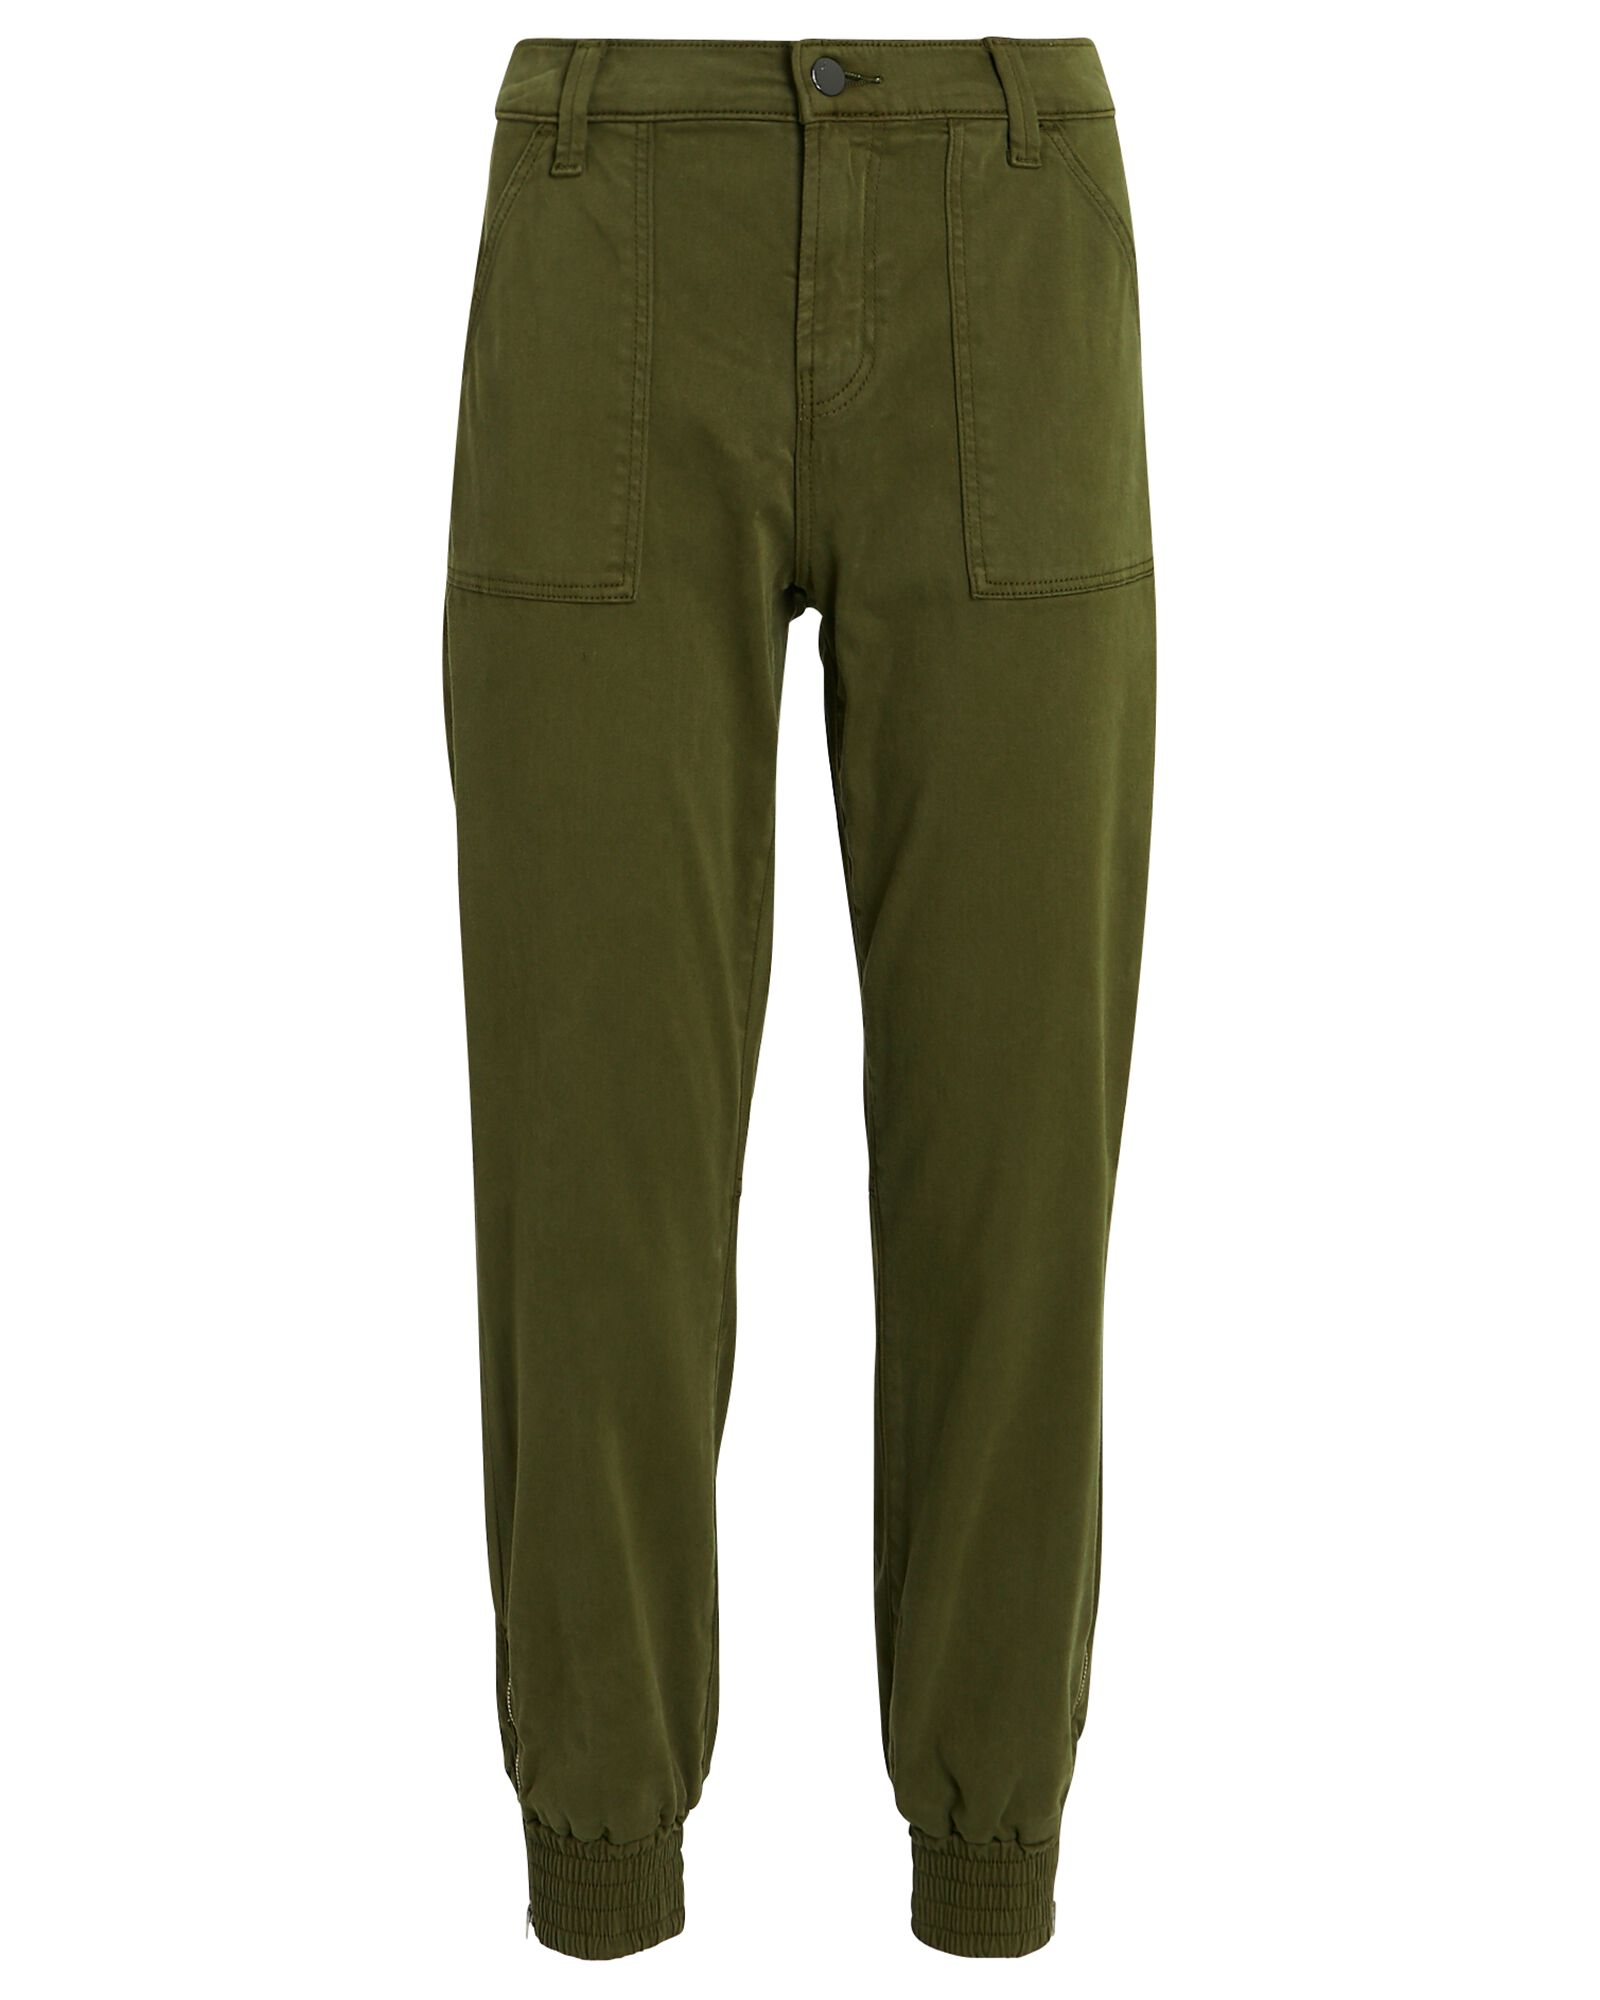 Arkin Sateen Joggers, OLIVE/ARMY, hi-res